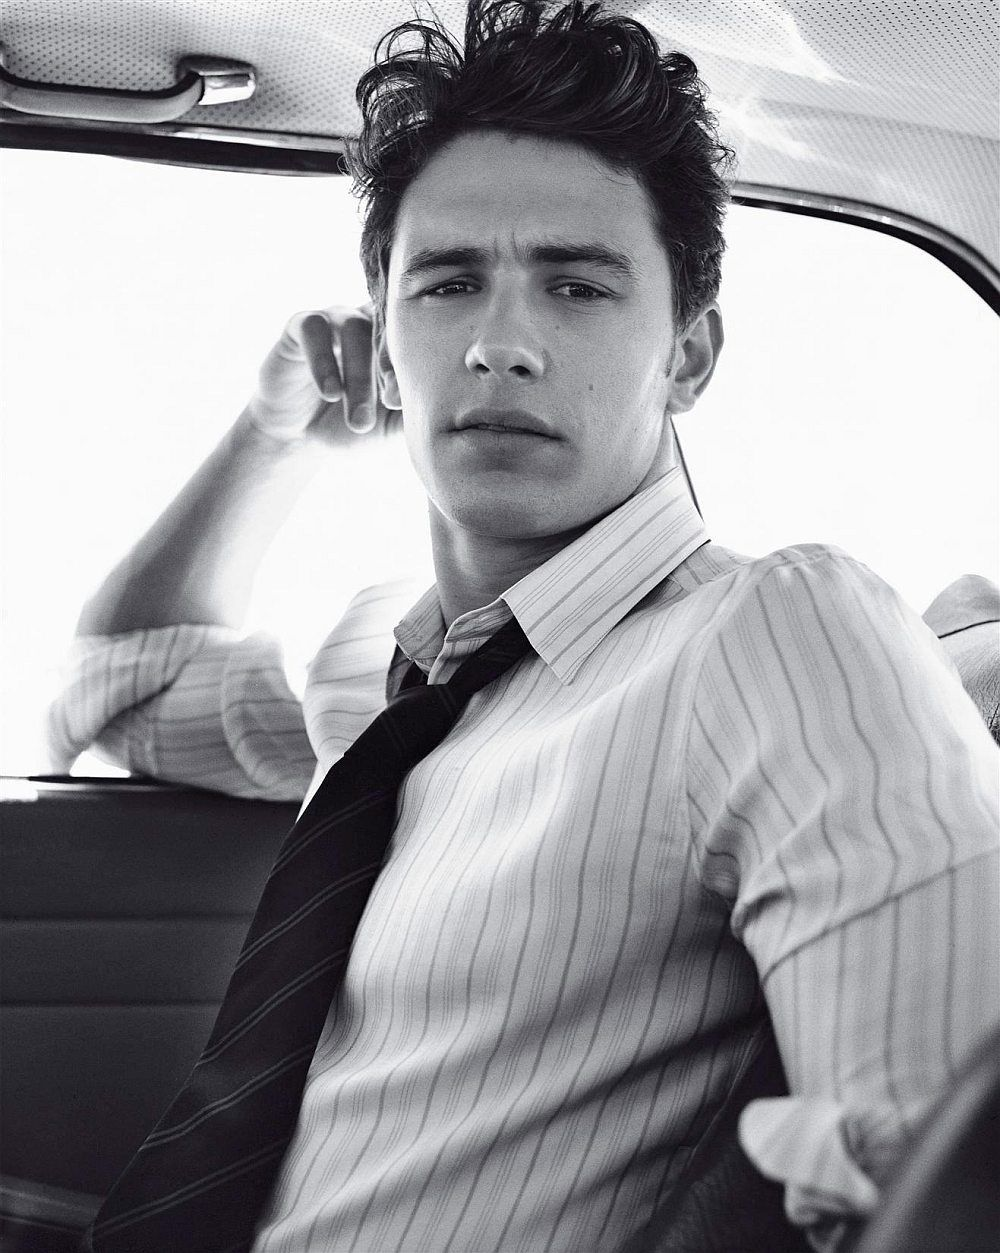 James Franco | Beautiful, Sexy and Geek culture